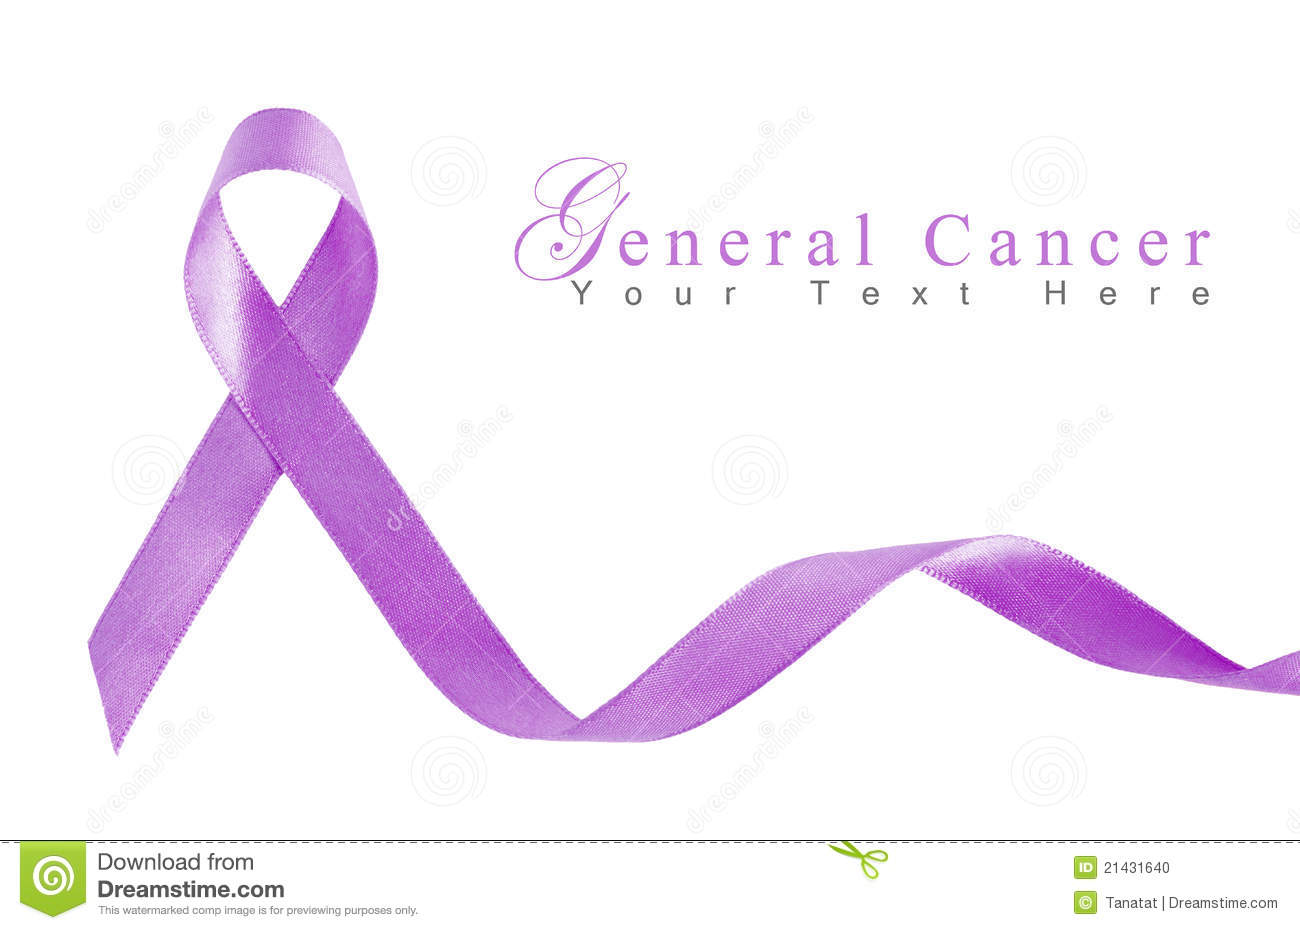 Lavender Ribbon For General Cancer Stock Photo - Image: 21431640